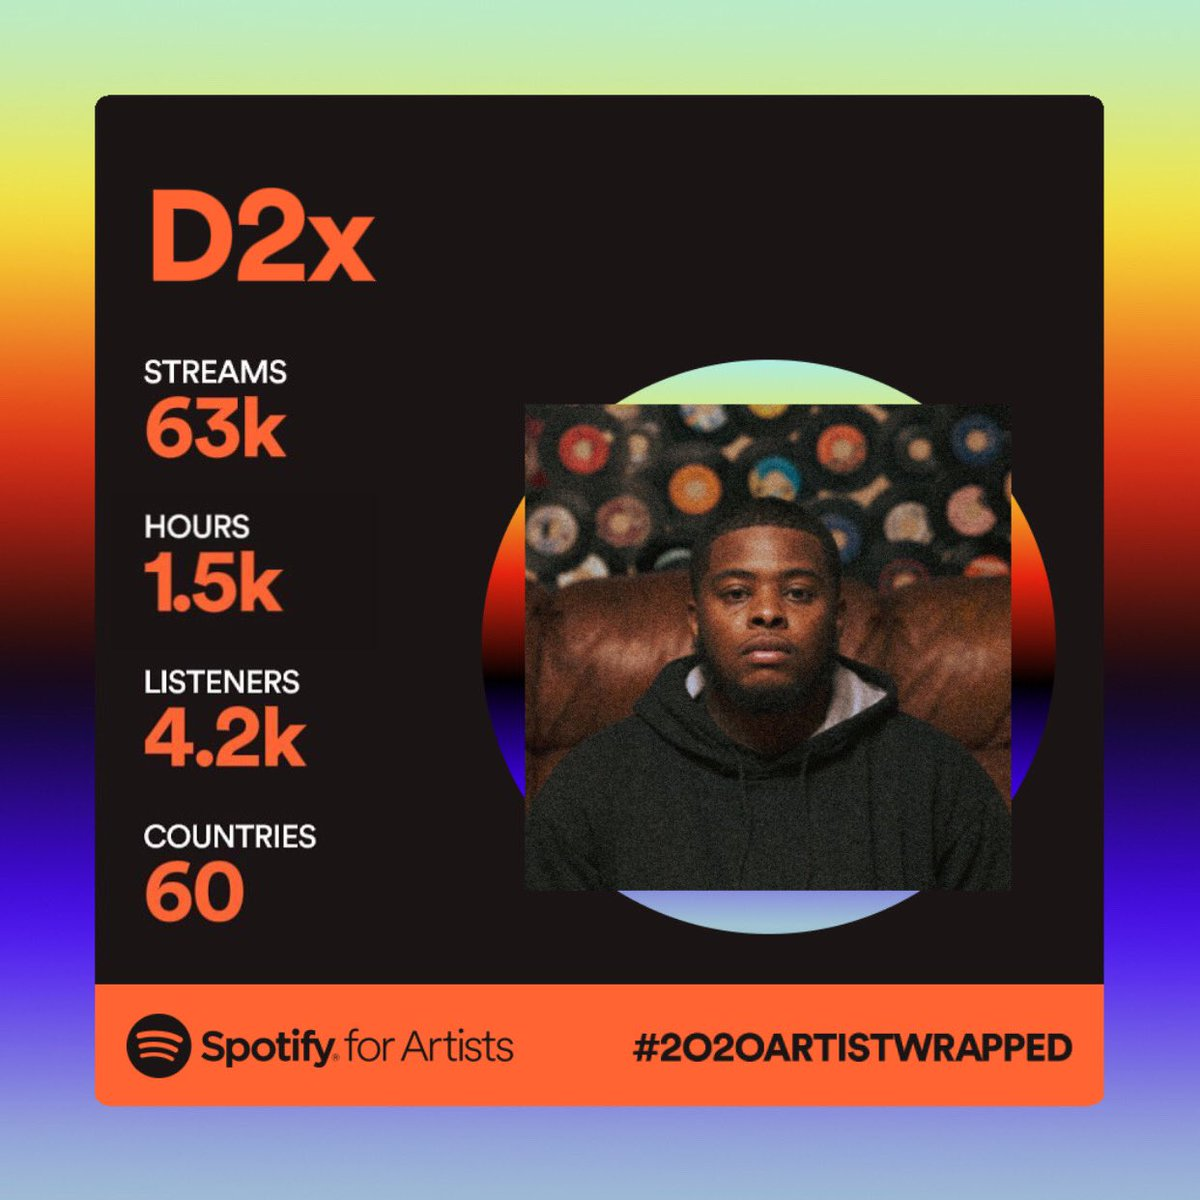 LORD Keep me different. THANK YOU GUYS !!! 🙏🏽🌟 @Spotify 🌟 #SpotifyWrapped2020